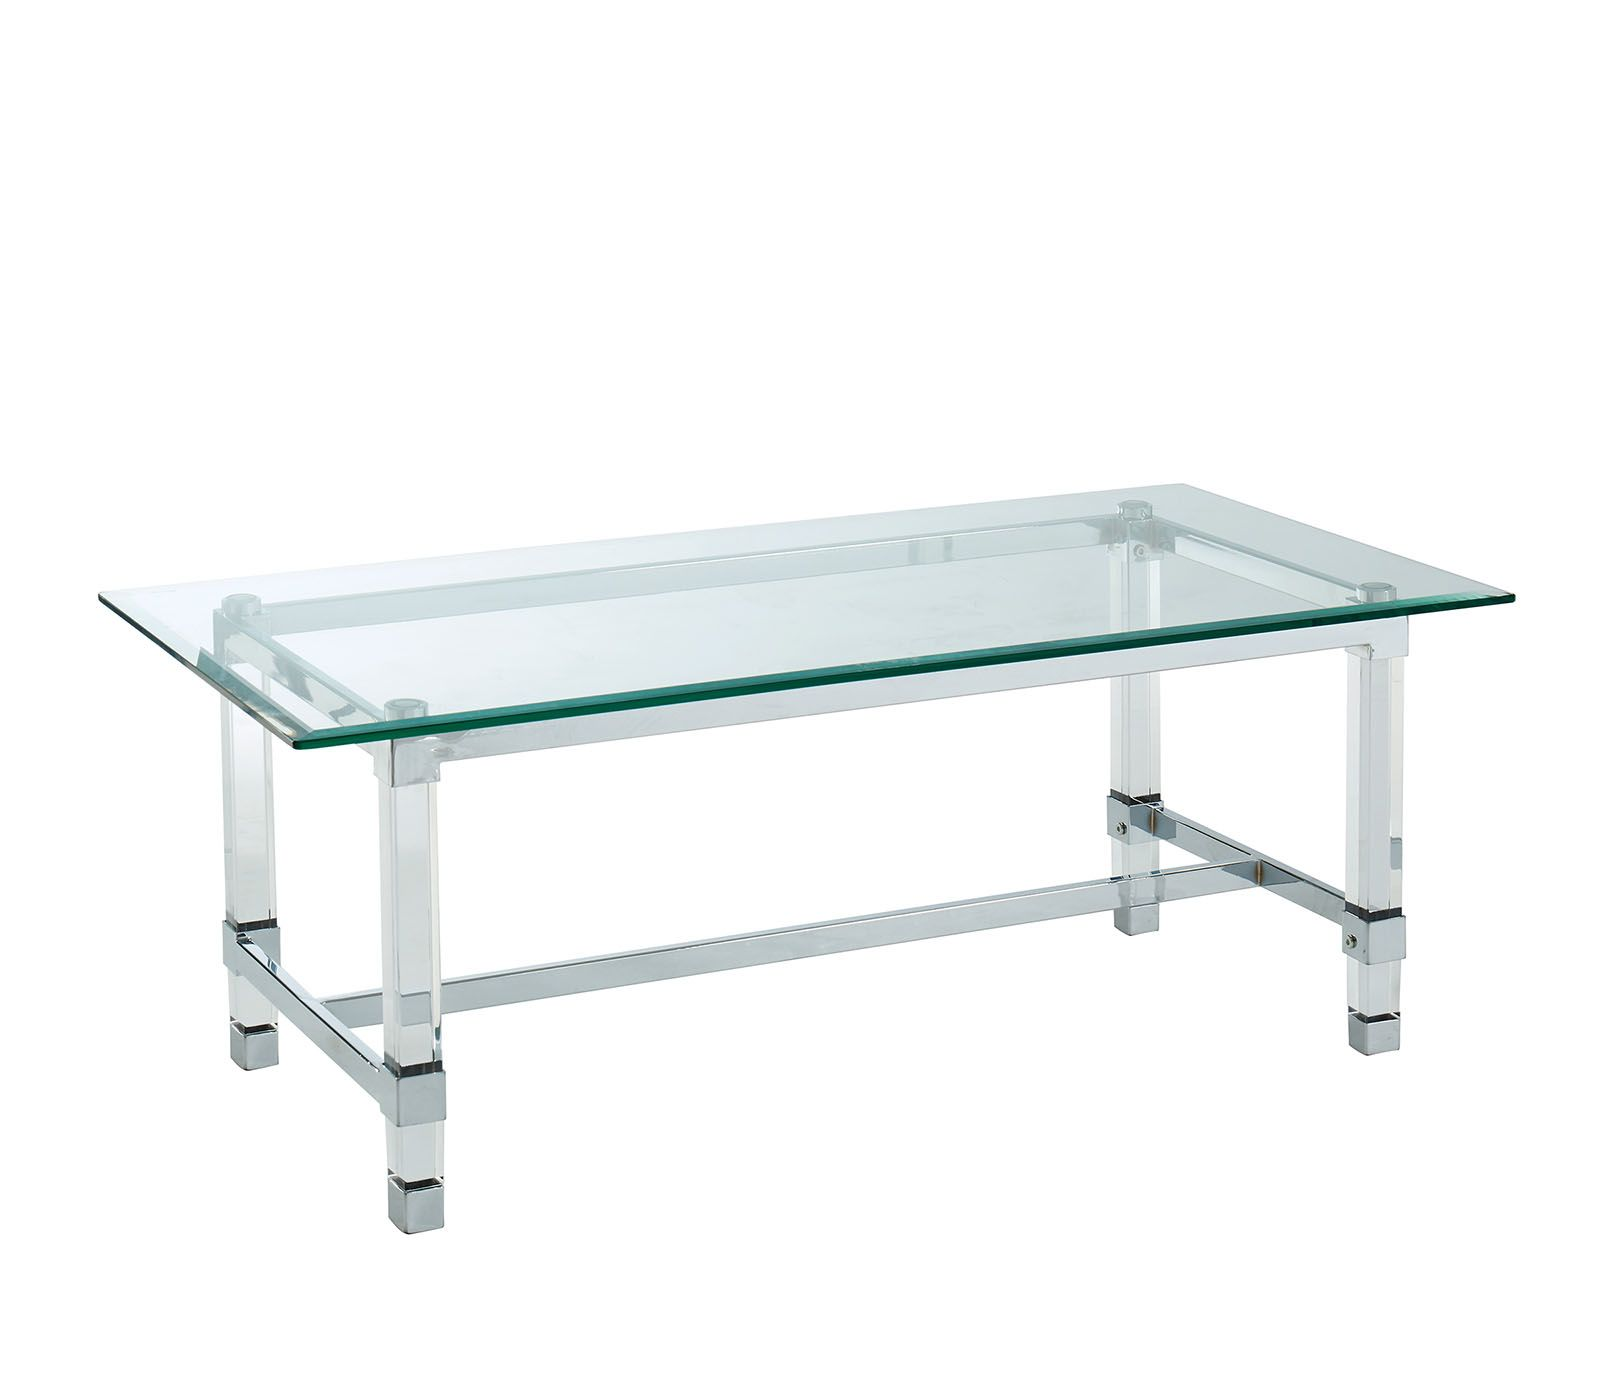 Tuva Coffee Table In 2020 Glass Top Coffee Table Coffee Table Frame Contemporary Coffee Table